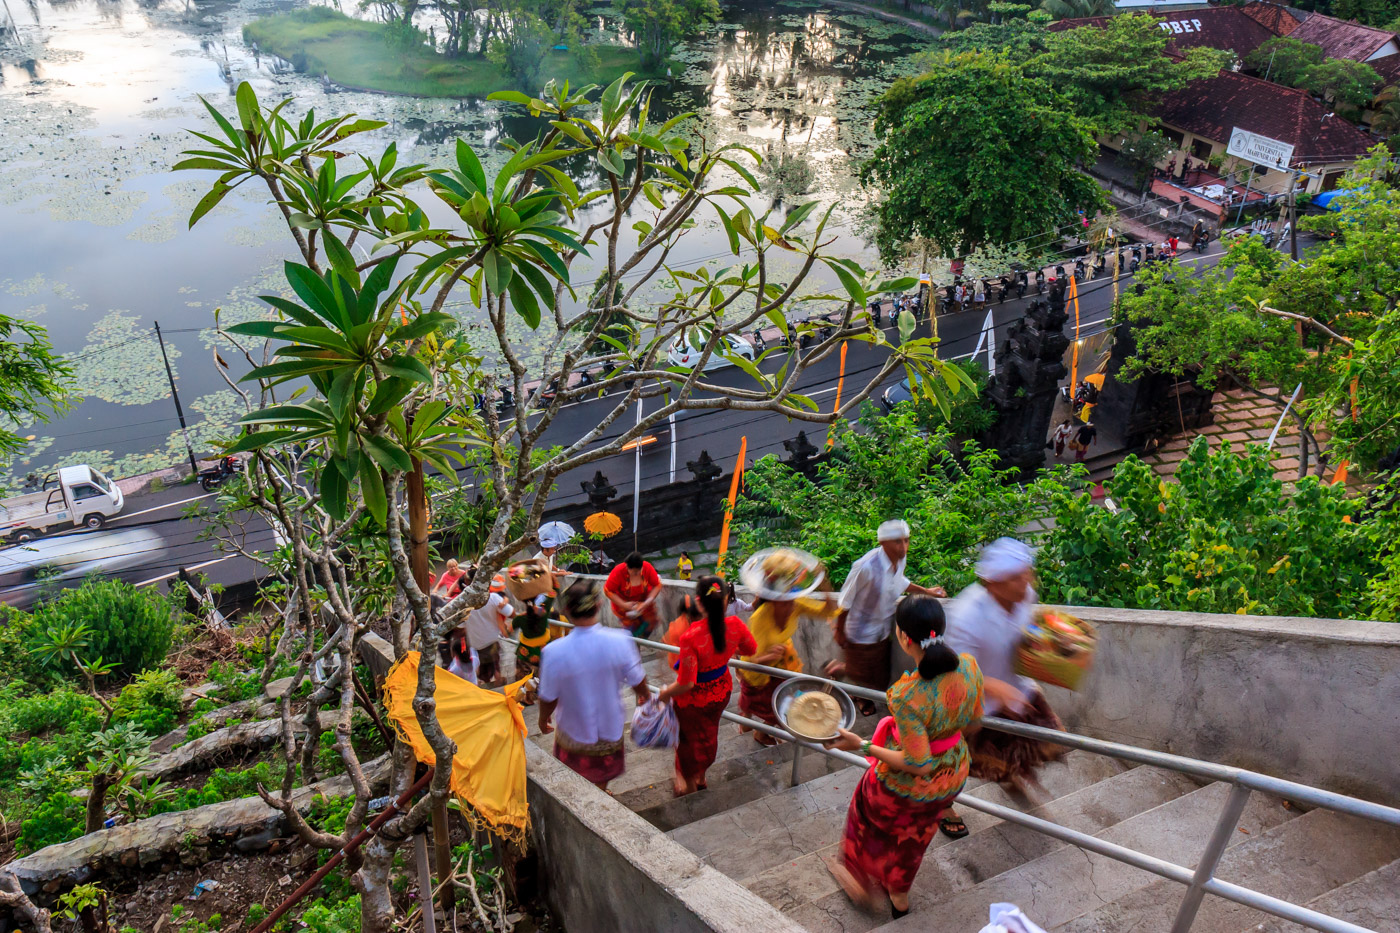 Locals heading to the temple.